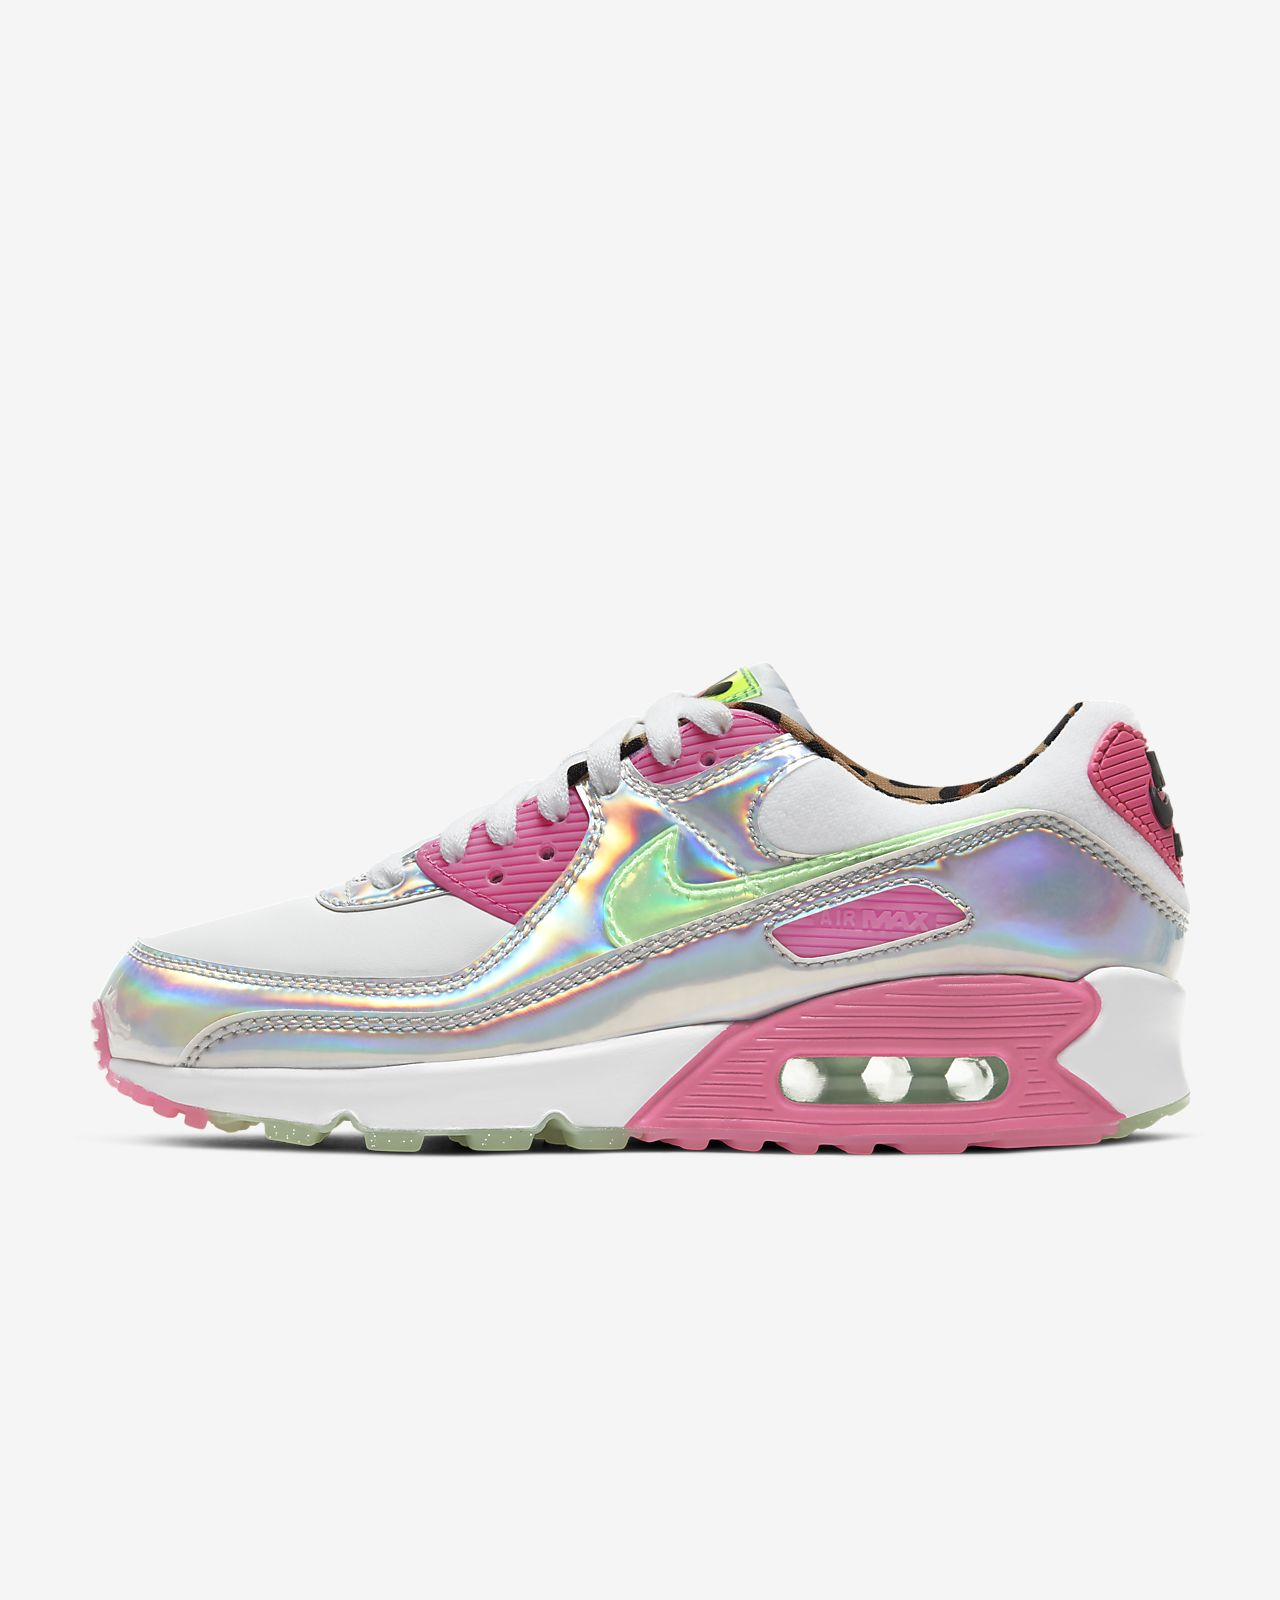 Nike Air Max 90 LX Damesschoen